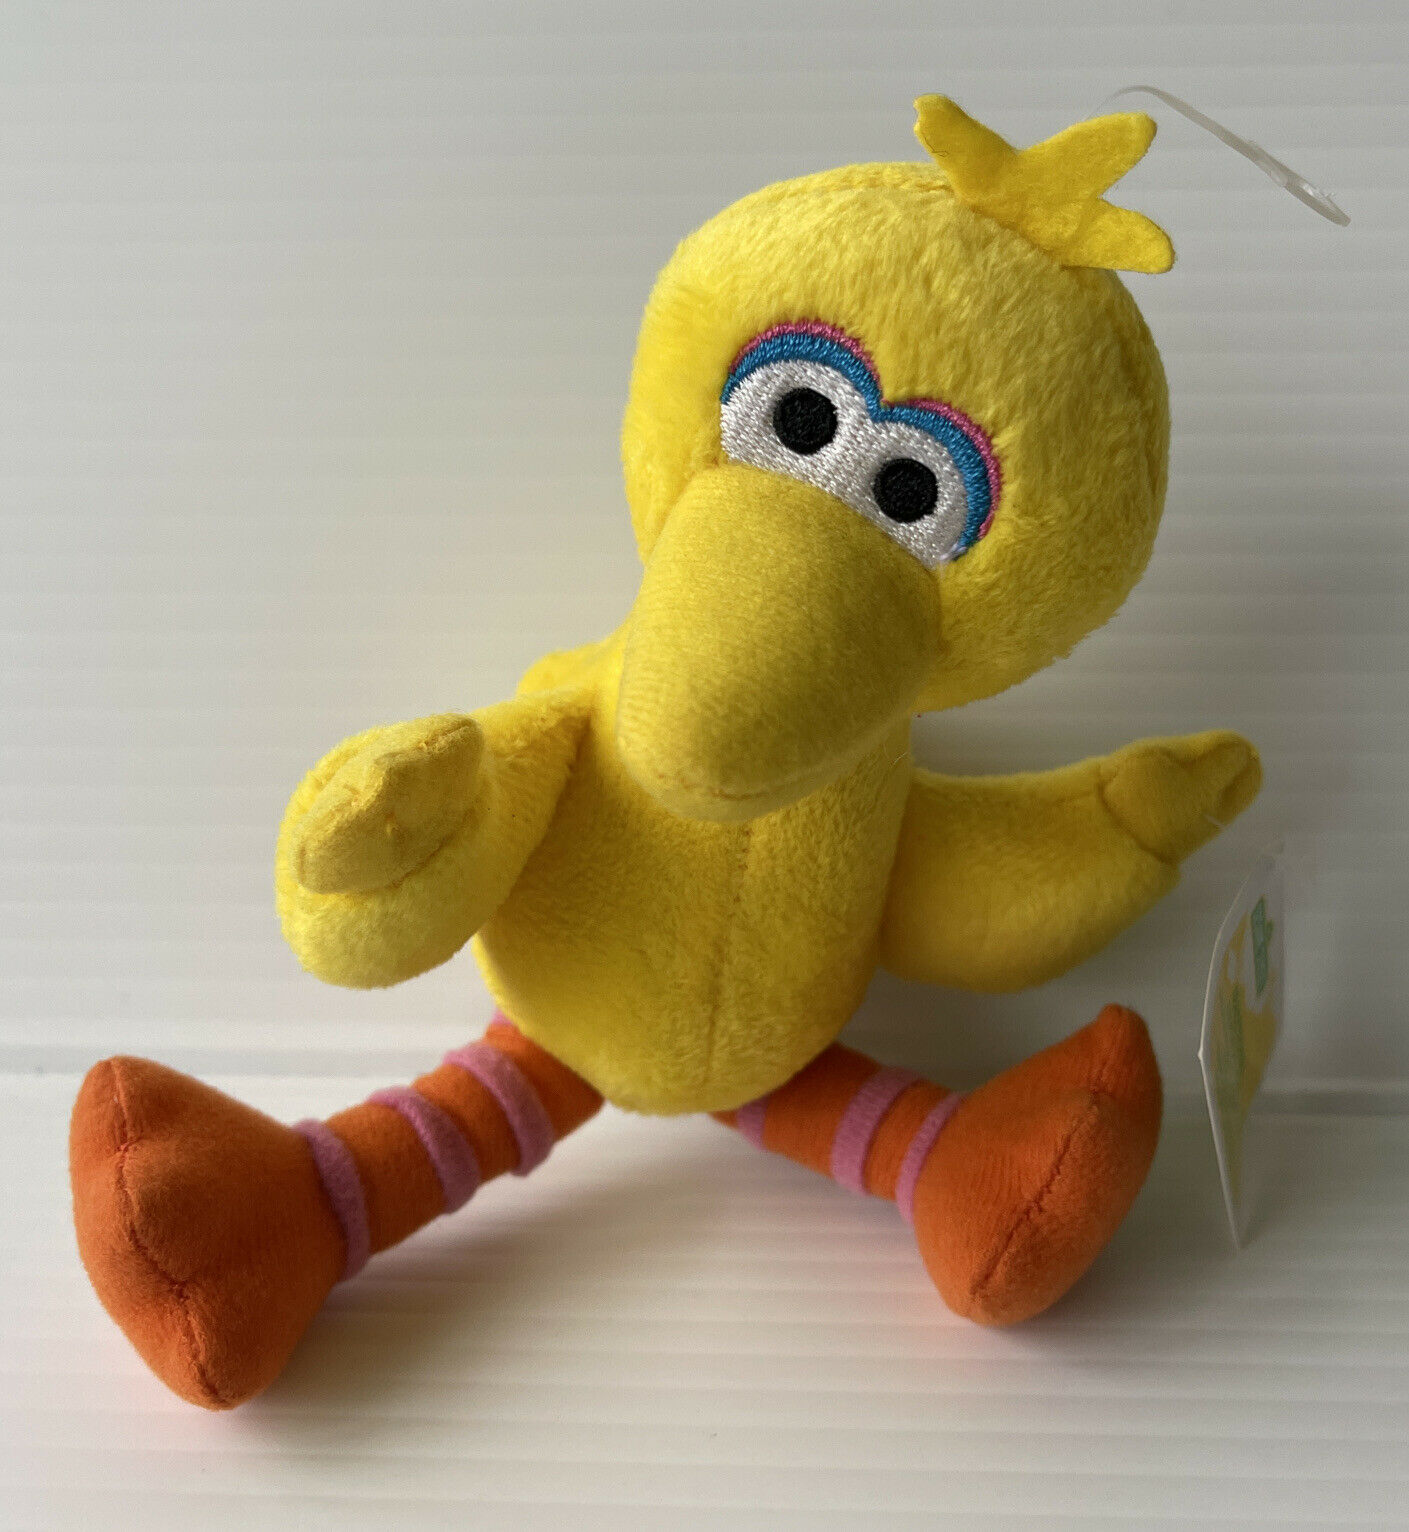 7 inches seated Big Bird small plush doll; Applause NEW SEALED 10 inches tall